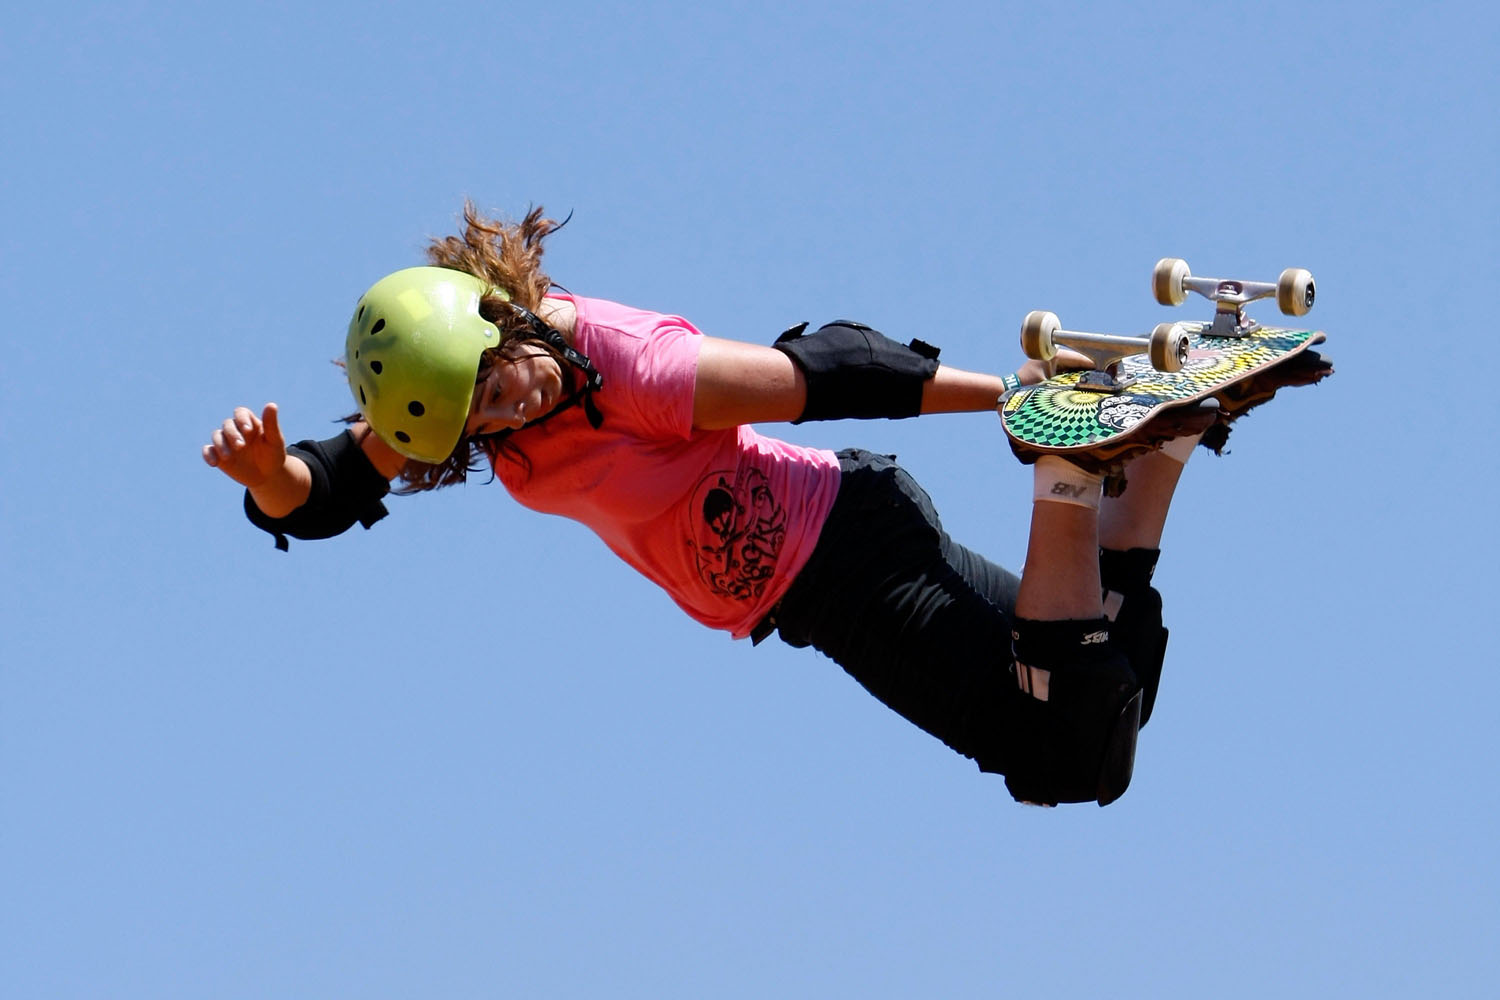 Gaby Ponce competes in the Women's Skateboard Vert final during X Games 15 at the Home Depot Center on July 30, 2009 in Carson, California.